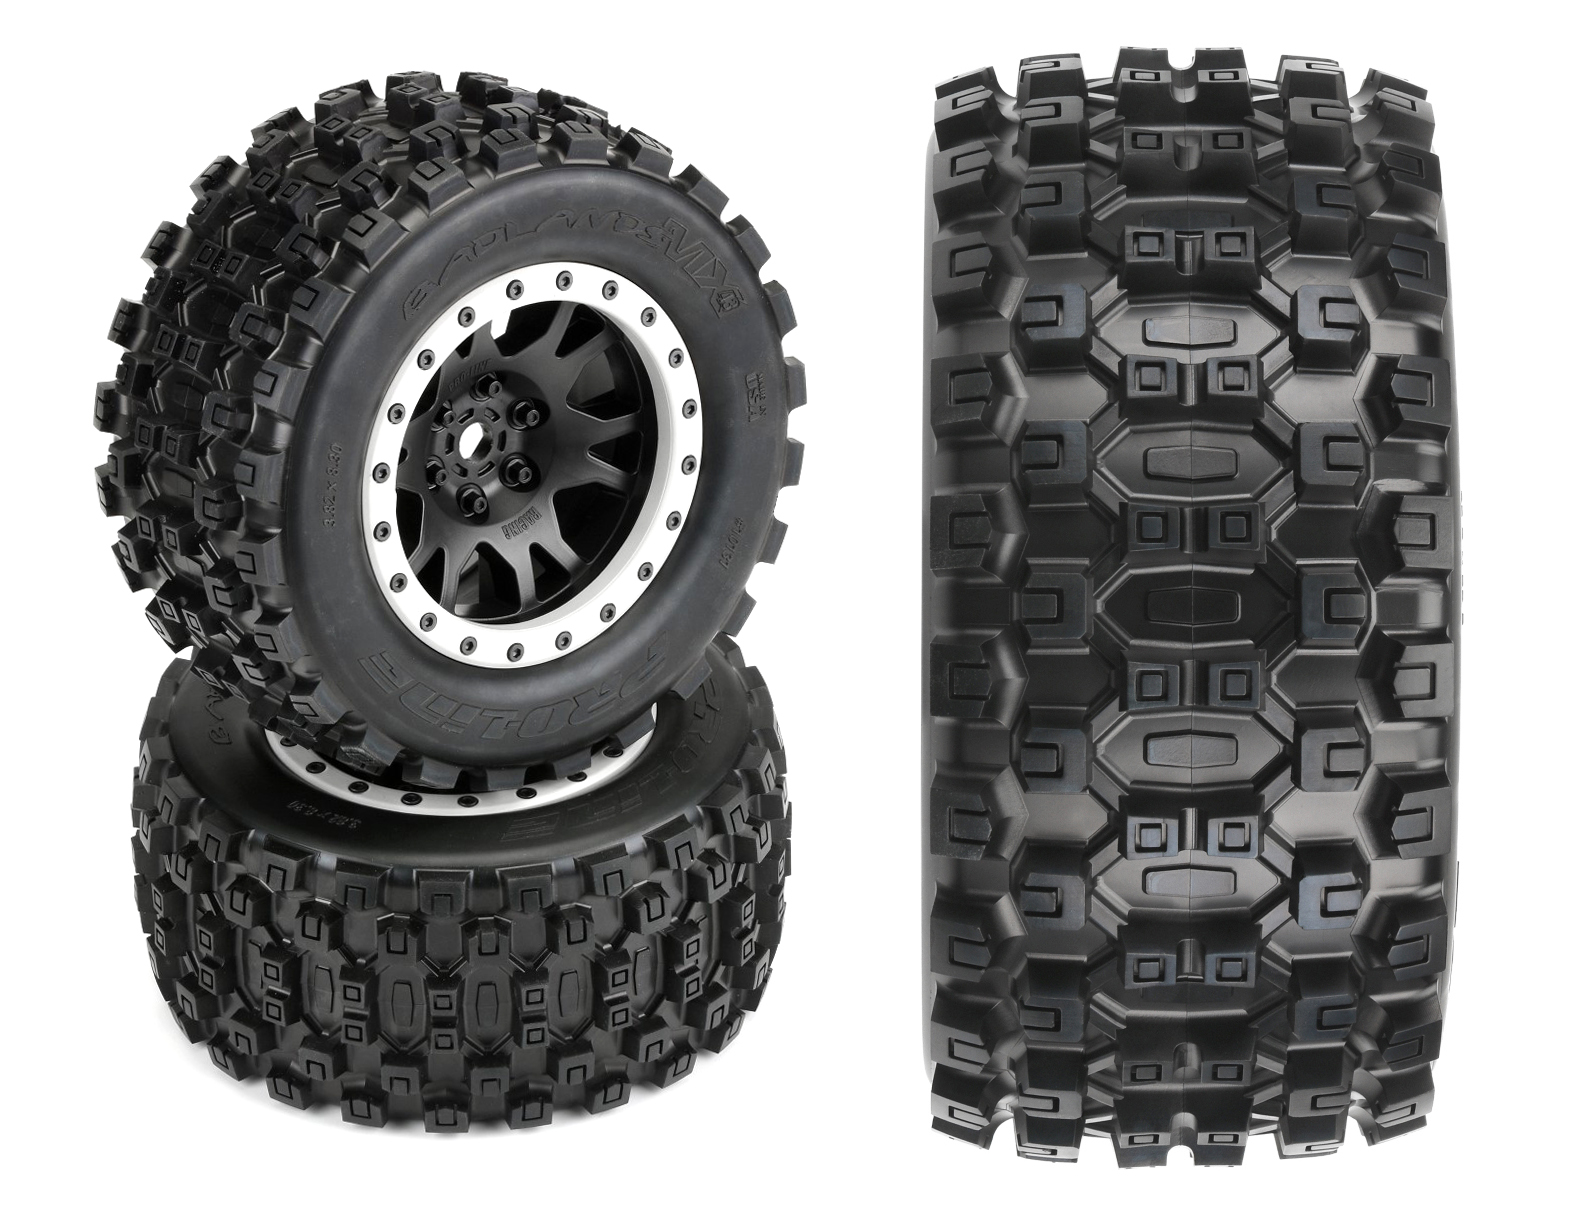 PRO-LINE MX43 Badlands Pro-Loc Tires Impulse Pro-Loc Wheels and Ford F-150 Raptor Body for Traxxas X-Maxx Review 2